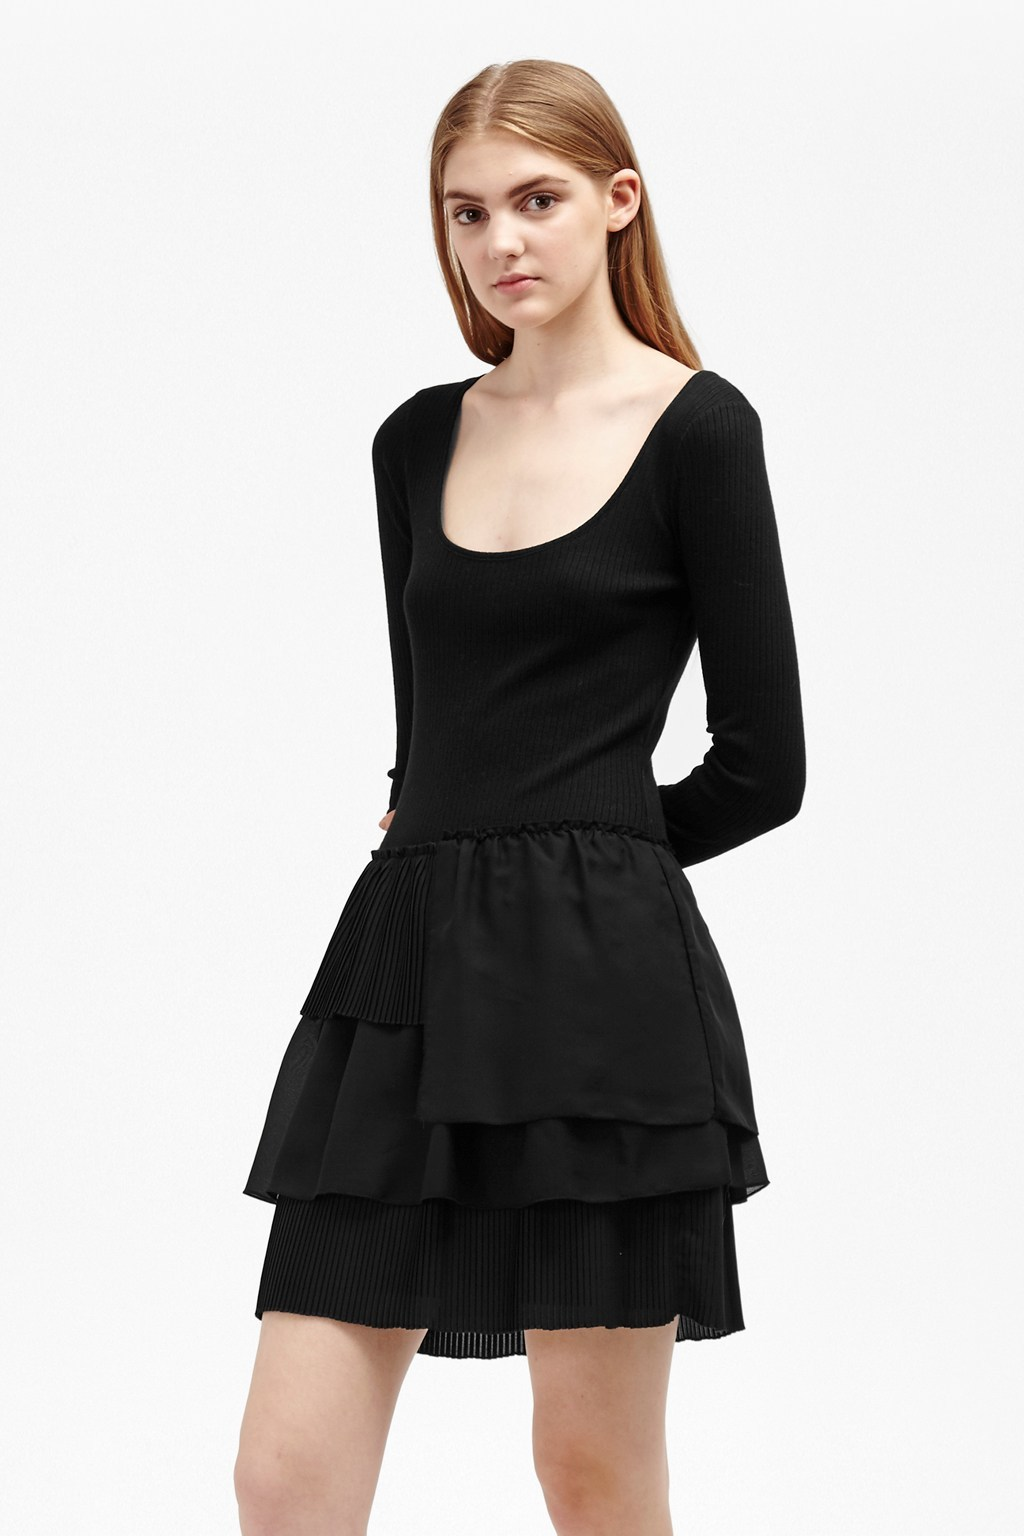 Tommy Rib Layer Dress Black - length: mid thigh; pattern: plain; predominant colour: black; occasions: evening; fit: fitted at waist & bust; style: fit & flare; neckline: scoop; fibres: cotton - mix; sleeve length: long sleeve; sleeve style: standard; hip detail: ruffles/tiers/tie detail at hip; pattern type: fabric; texture group: jersey - stretchy/drapey; season: a/w 2016